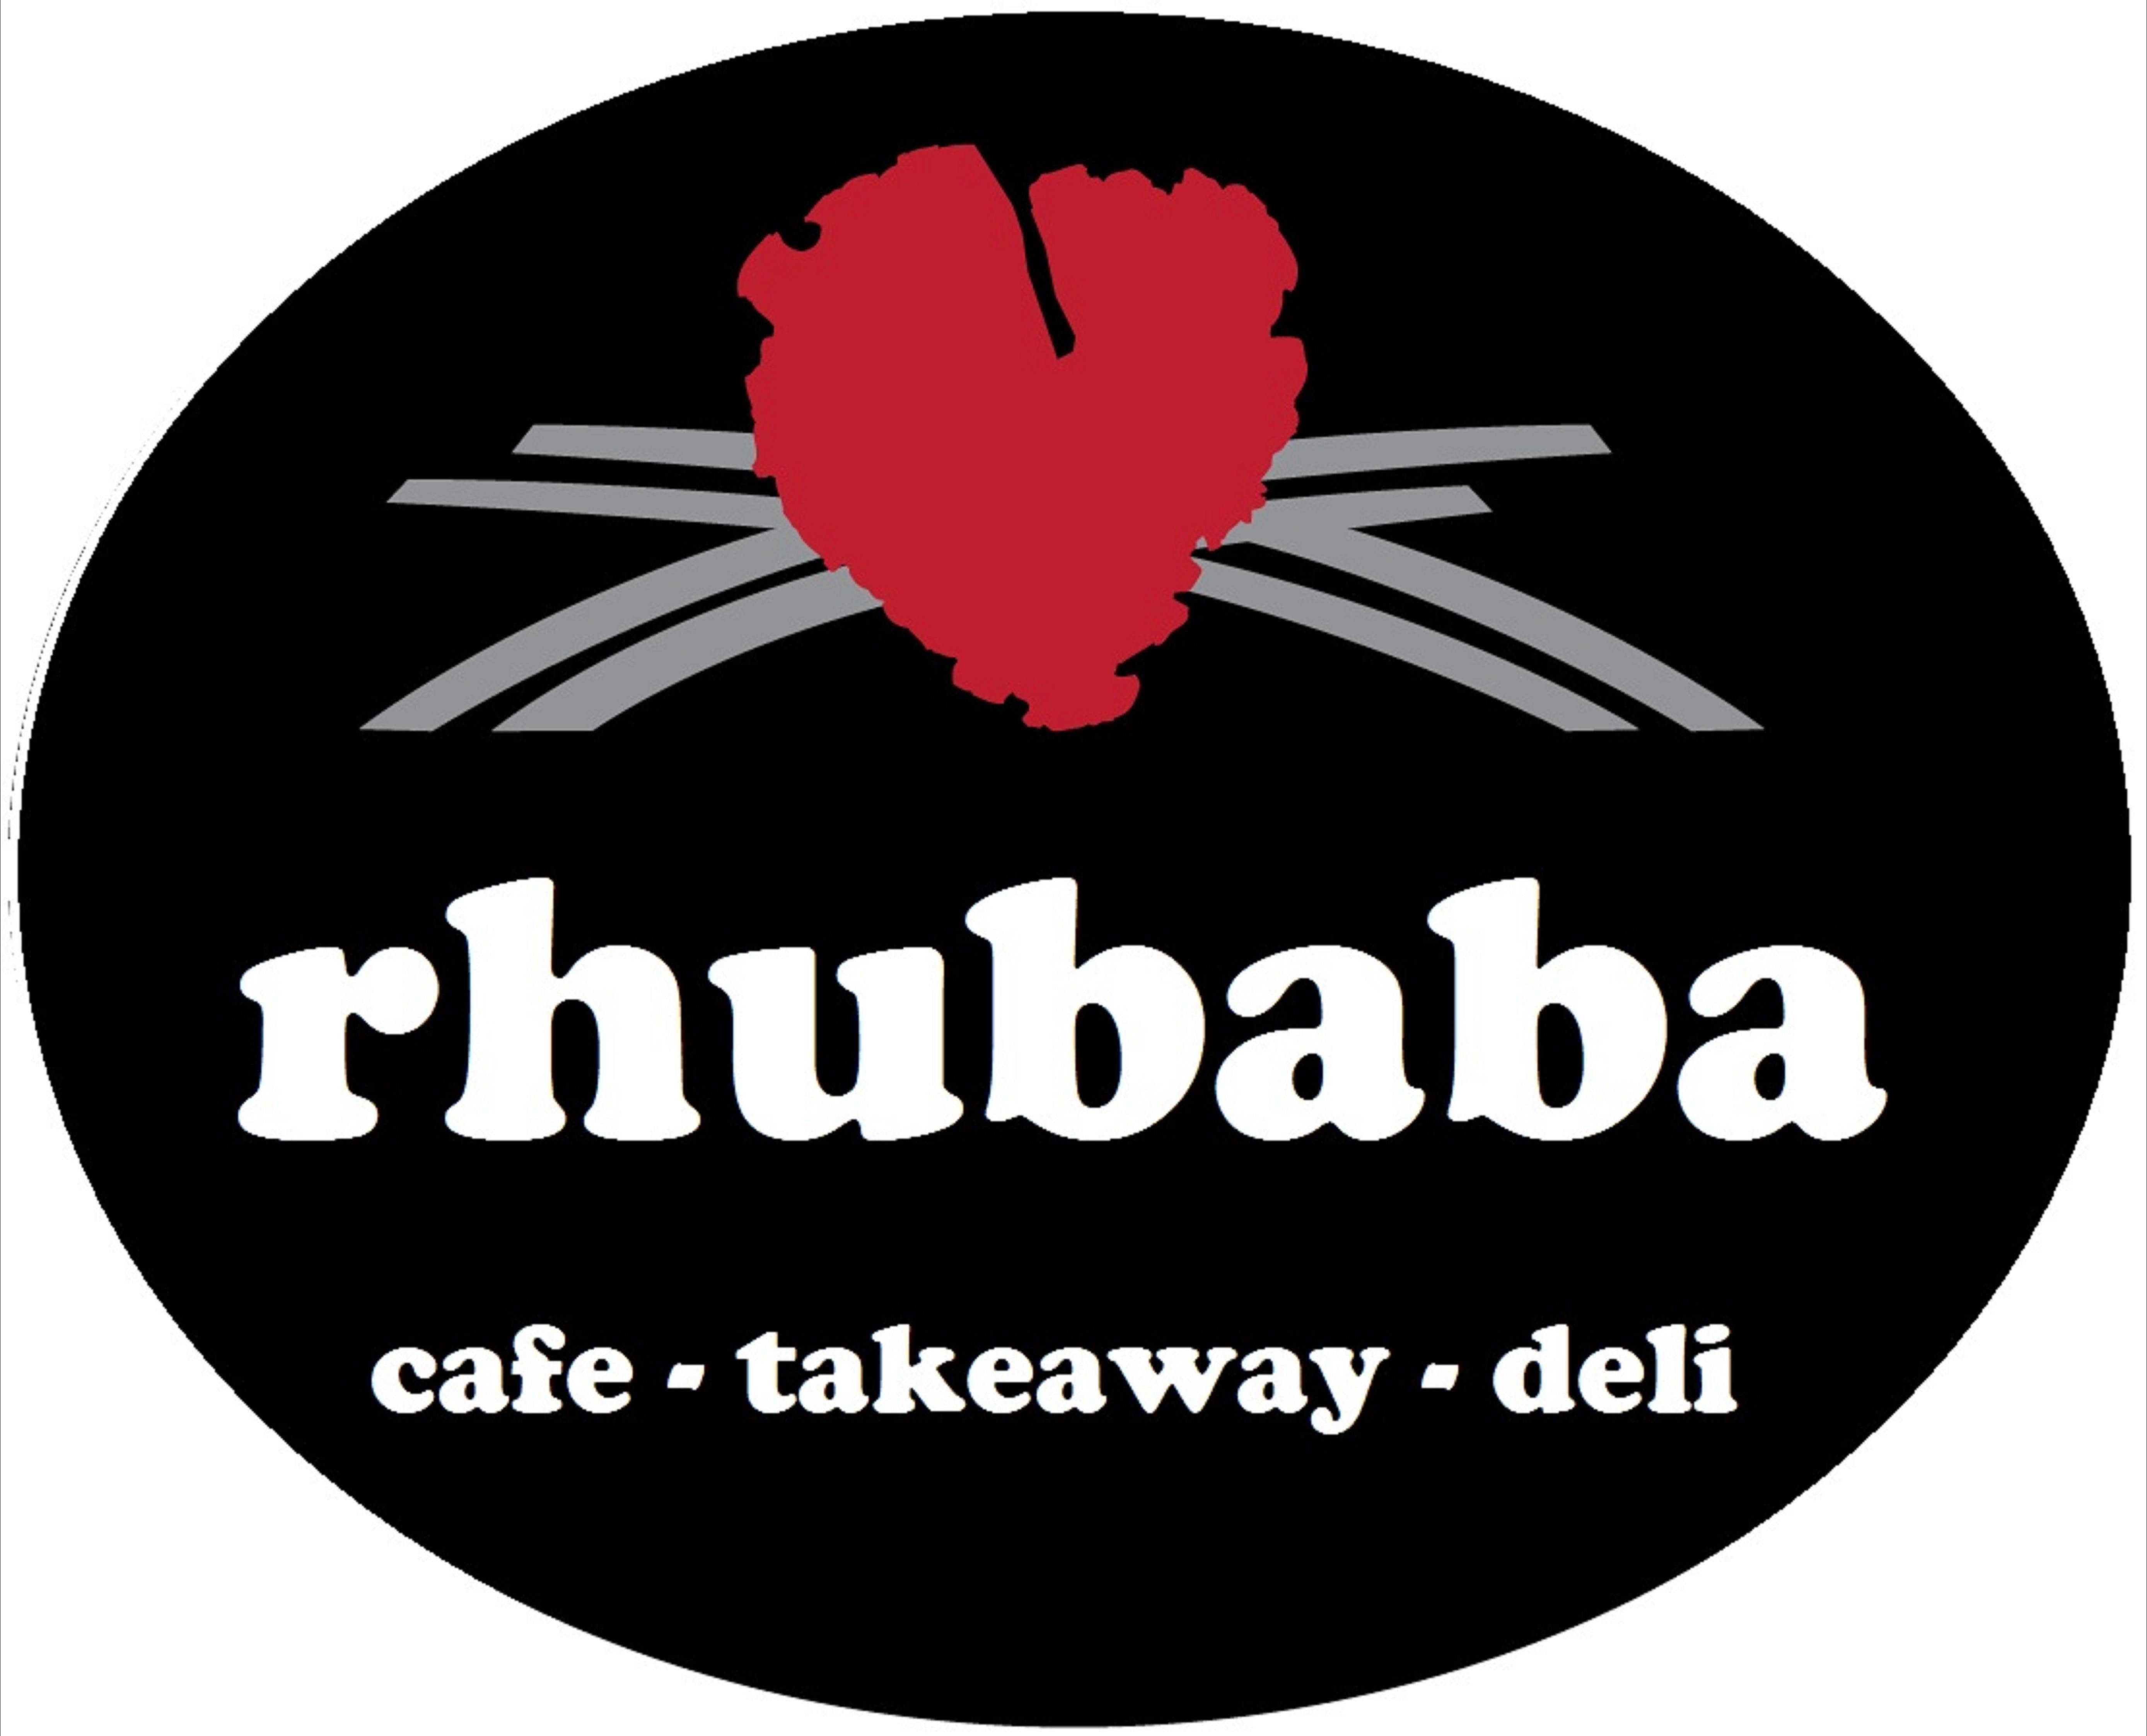 House of Rhubarb - ACT Tourism